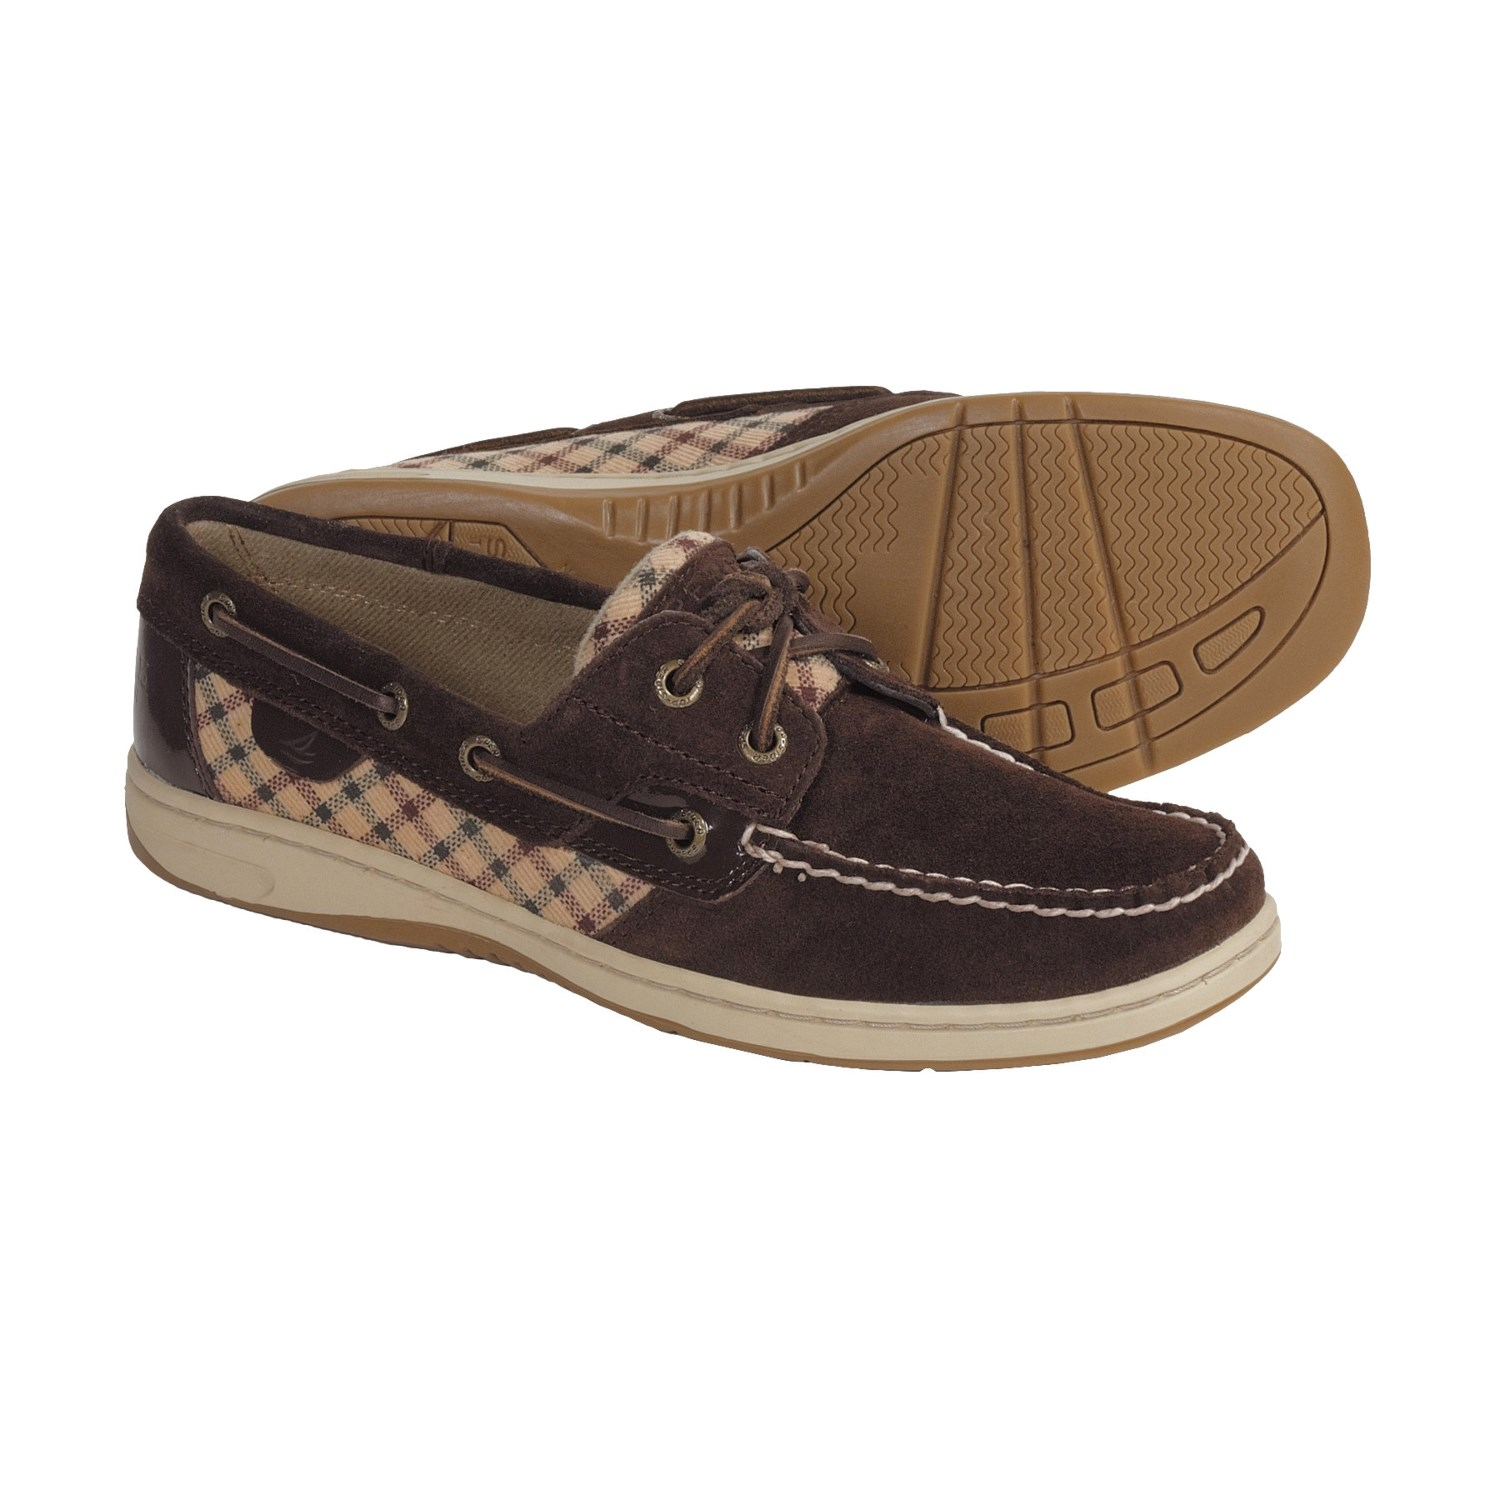 Sperry Top Sider Bluefish Boat Shoes (For Women) in Brown Suede